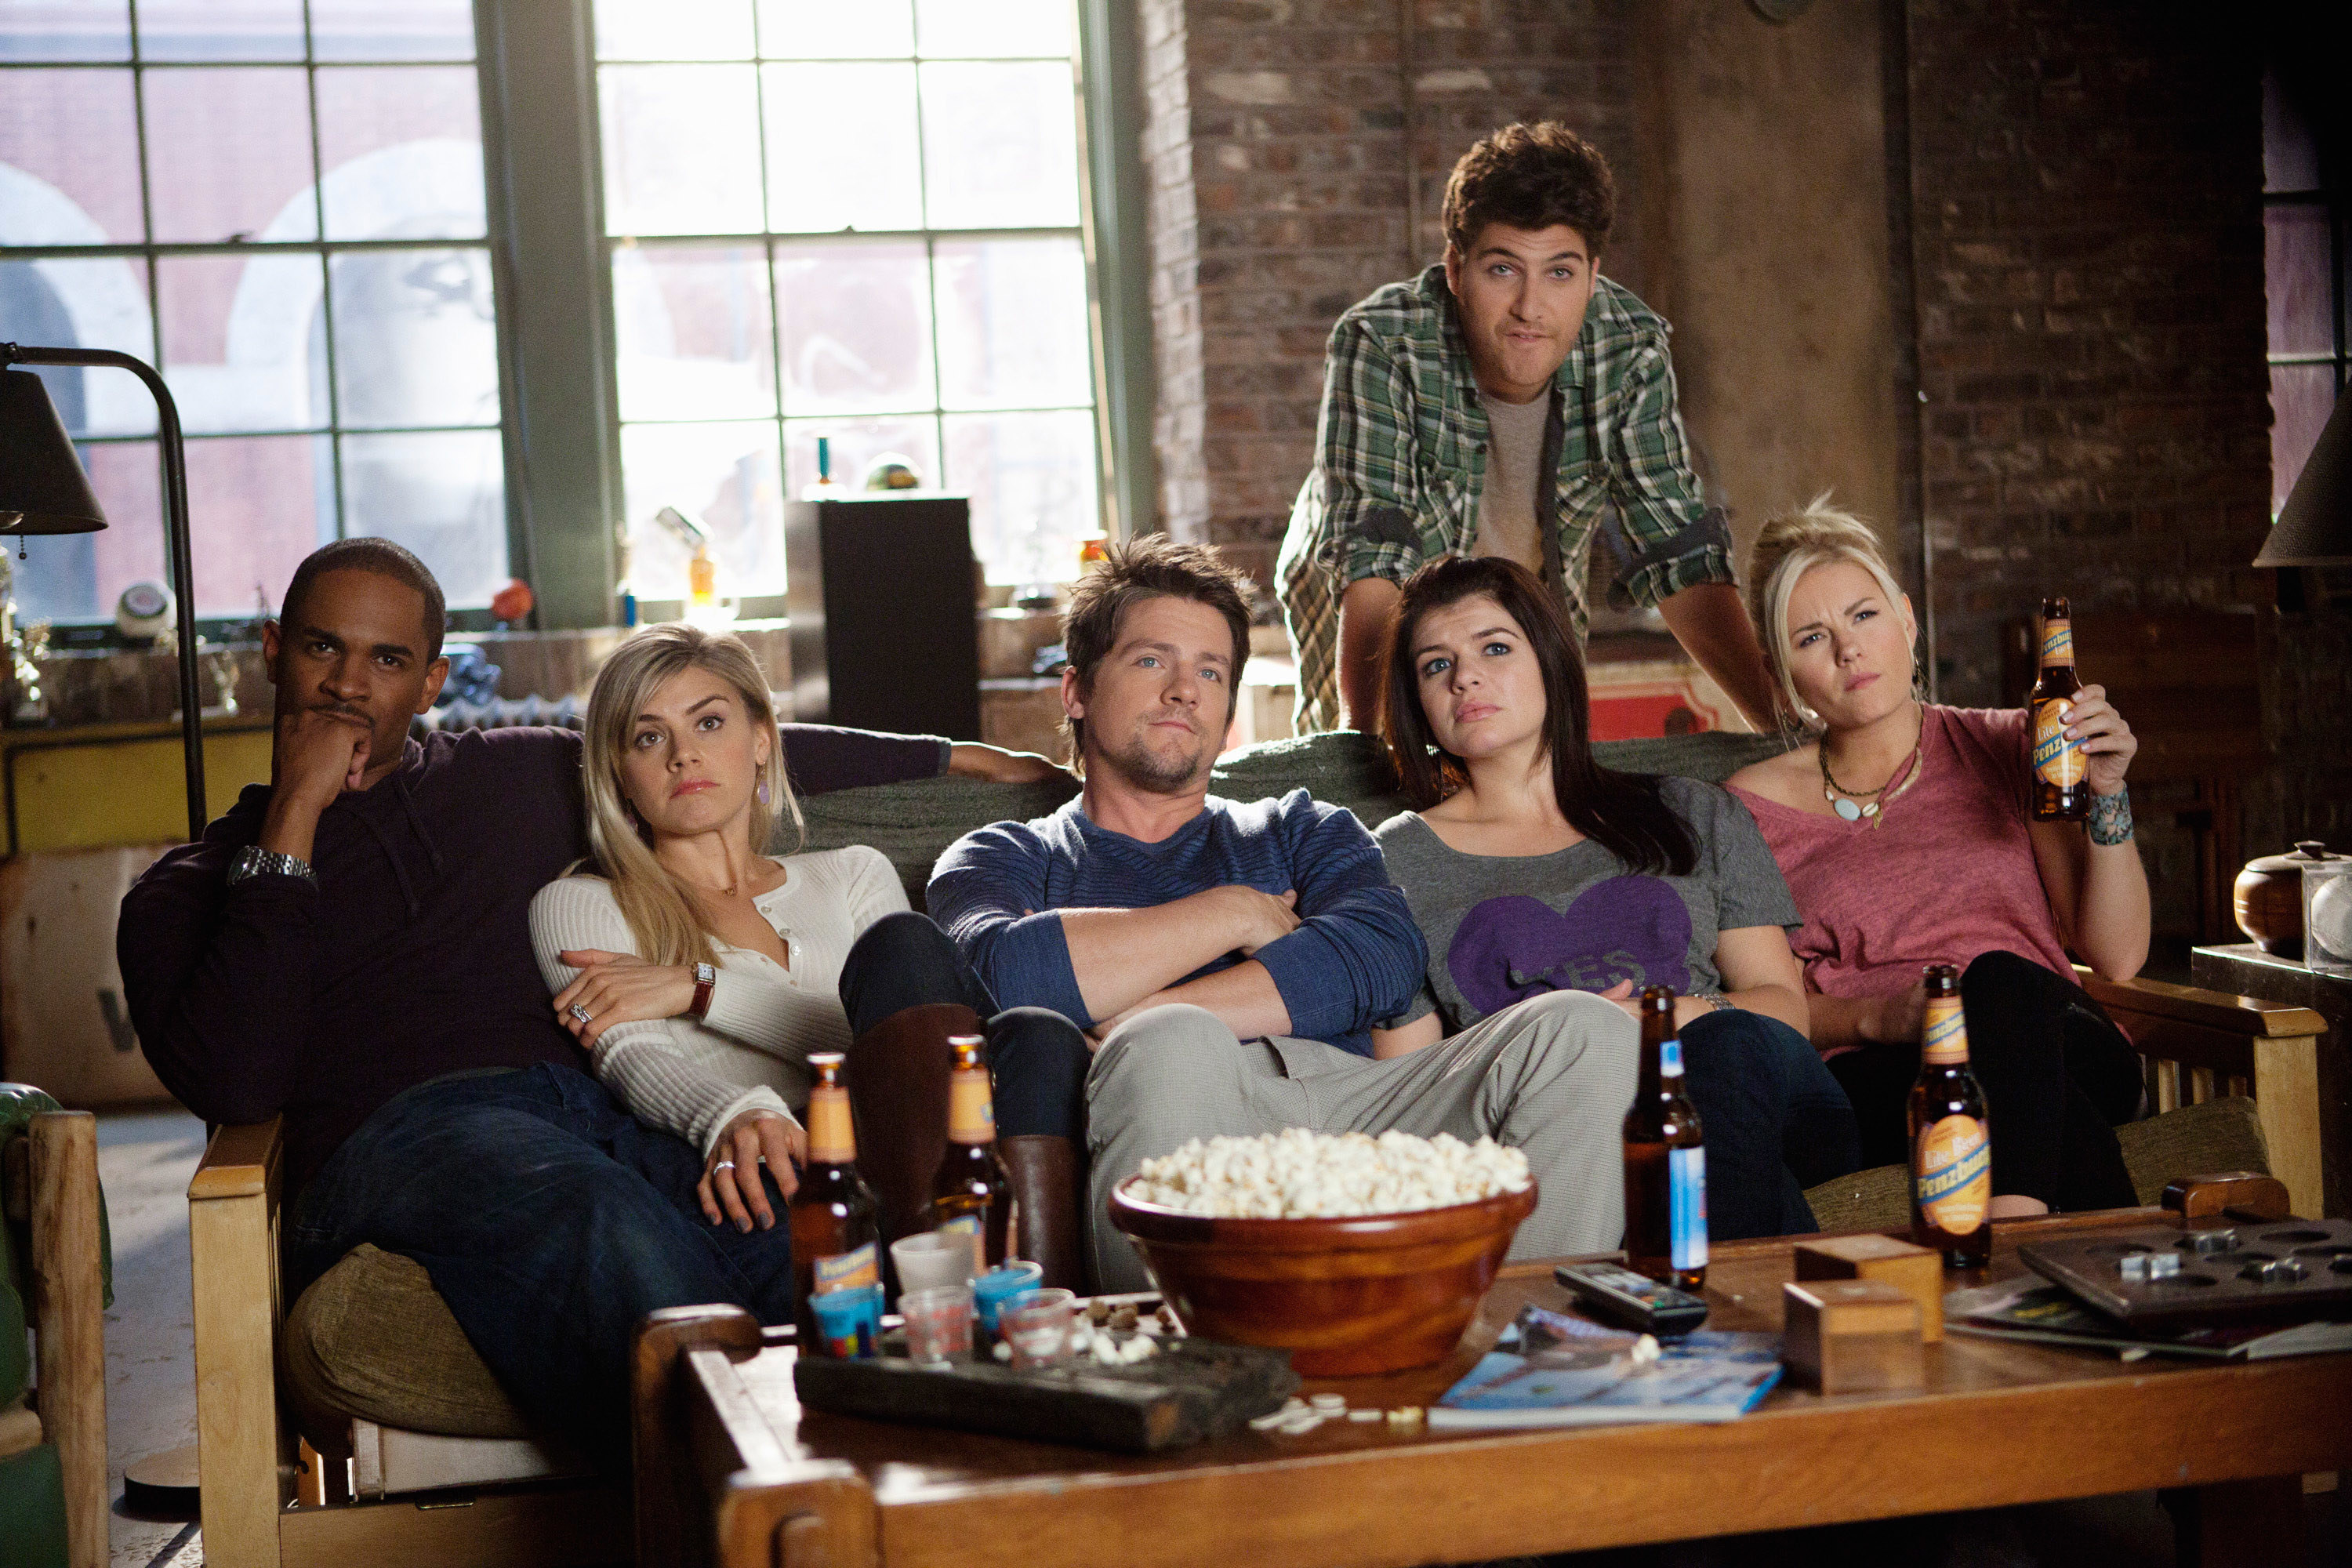 """Damon Wayans Jr., Eliza Coupe, Zachary Knighton, Casey Wilson, Adam Pally, and Elisha Cuthbert sitting on the couch drinking beer as Brad, Jane, Dave, Penny, Max, and Alex on """"Happy Endings"""""""